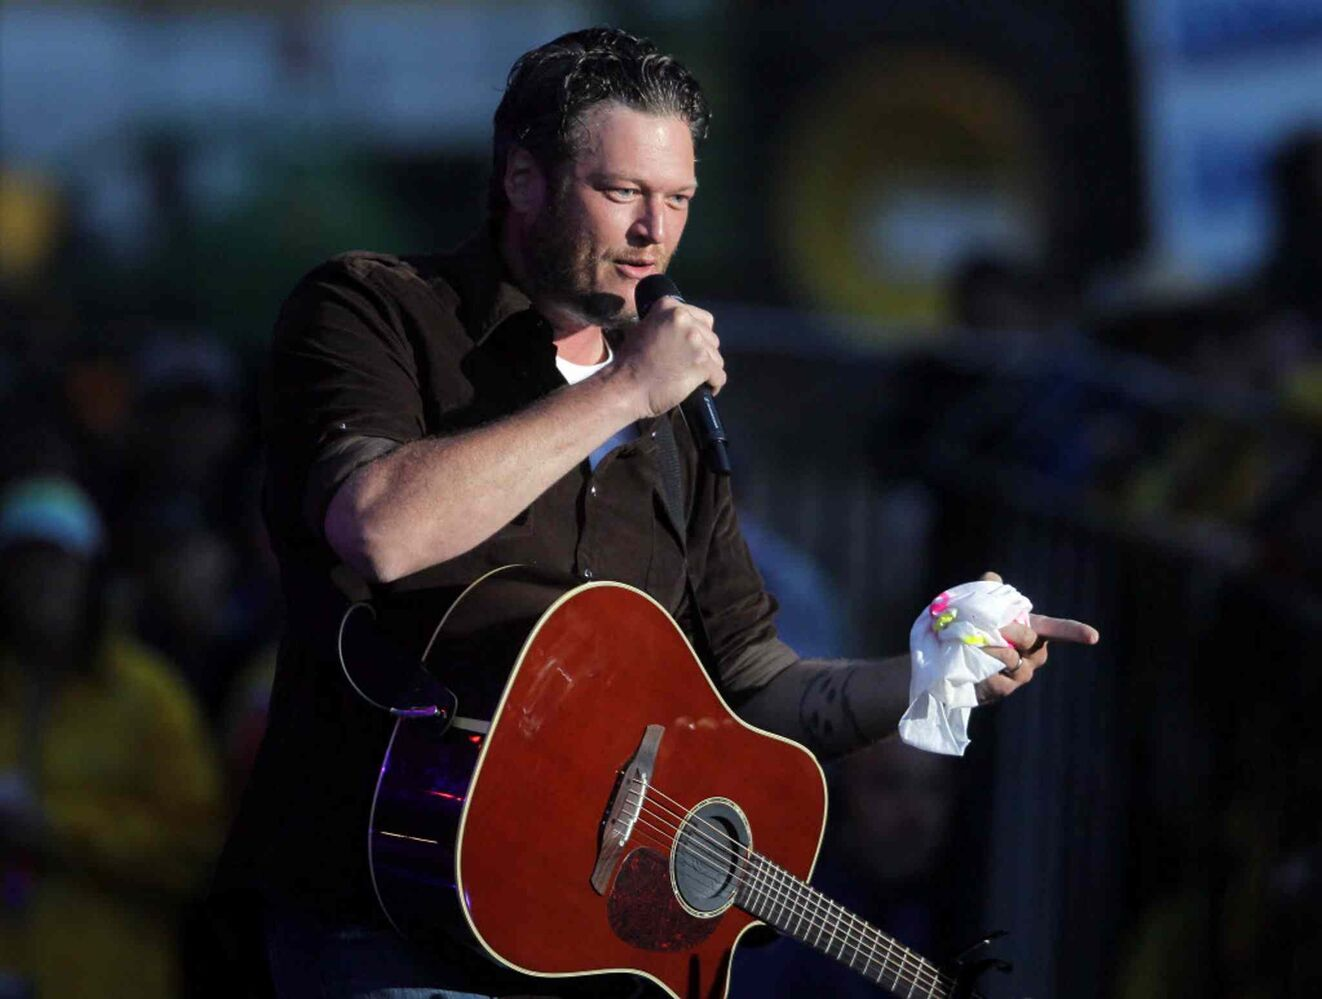 Blake Shelton performs as the festival's Saturday night headliner.